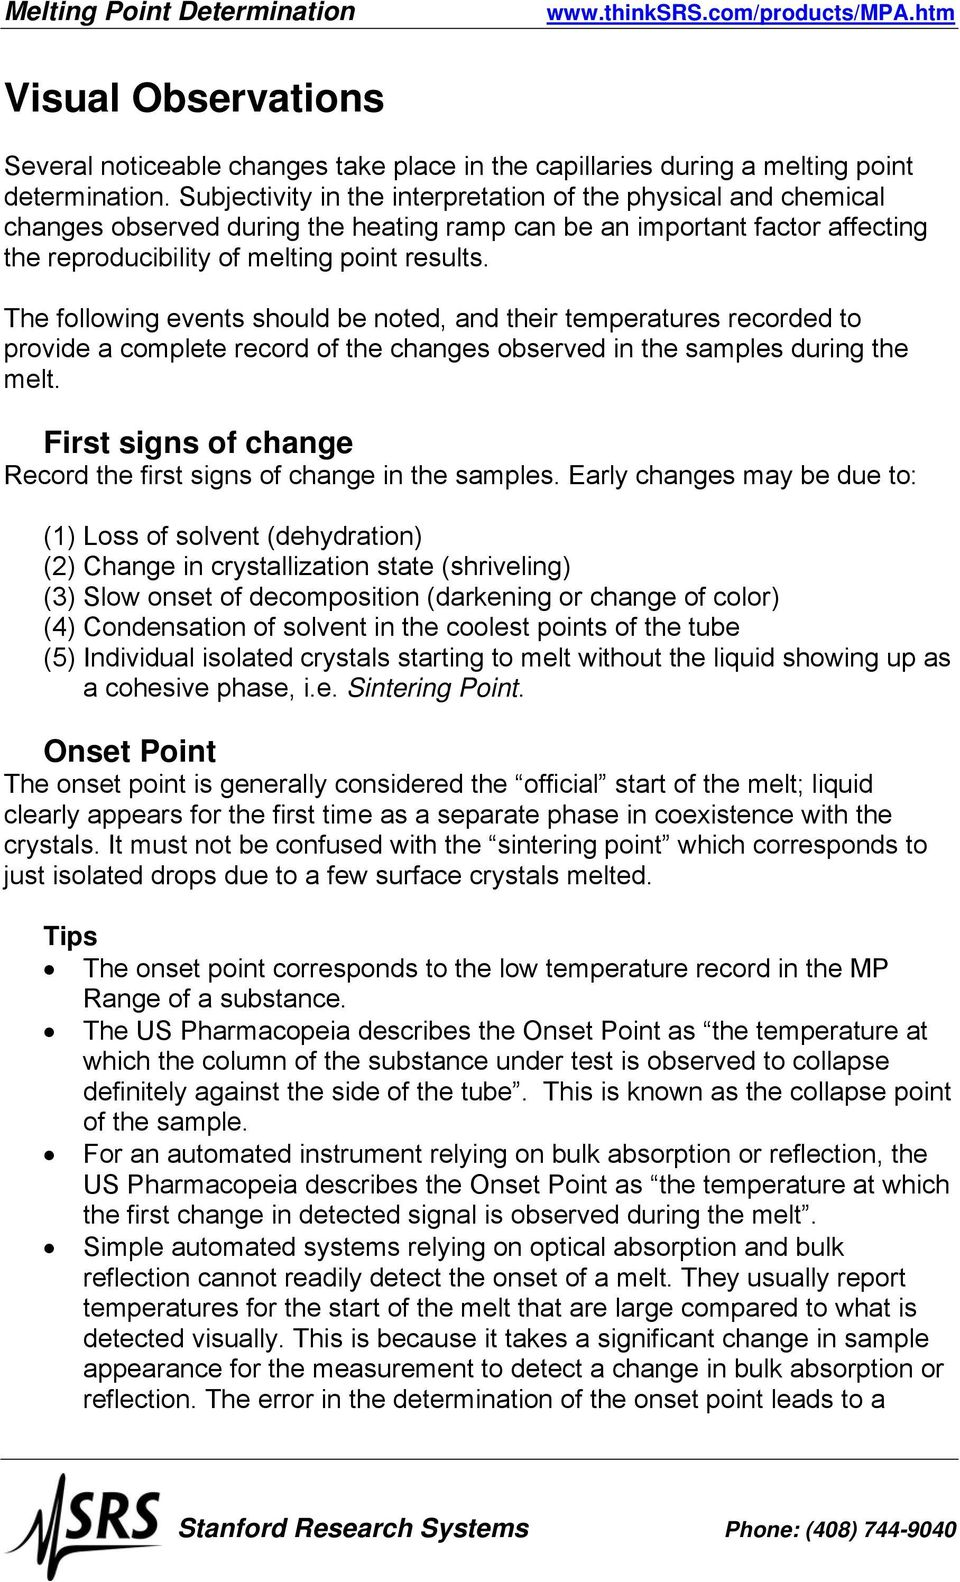 The following events should be noted, and their temperatures recorded to provide a complete record of the changes observed in the samples during the melt.